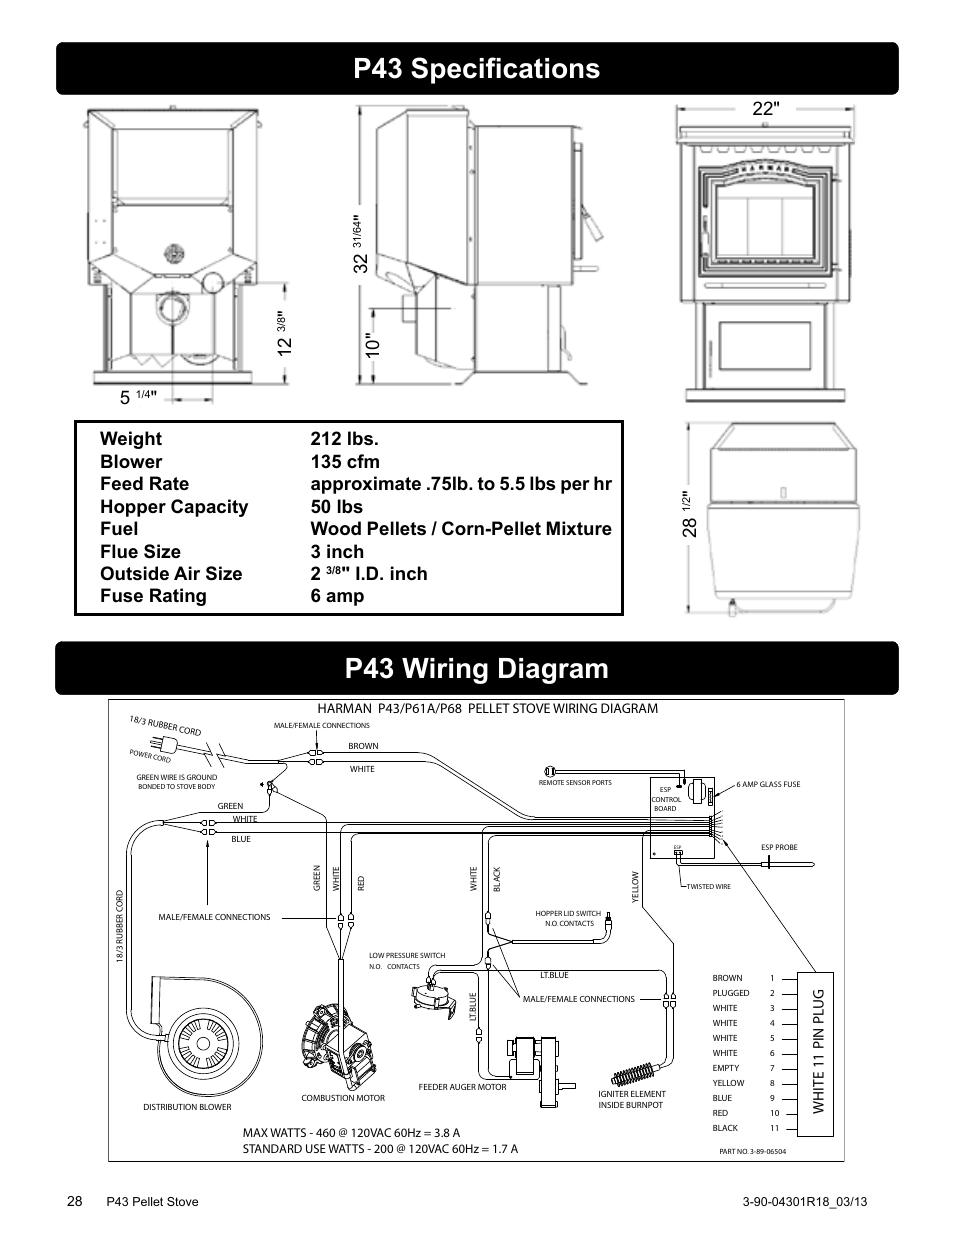 p43 specifications  p43 wiring diagram  i d  inch fuse